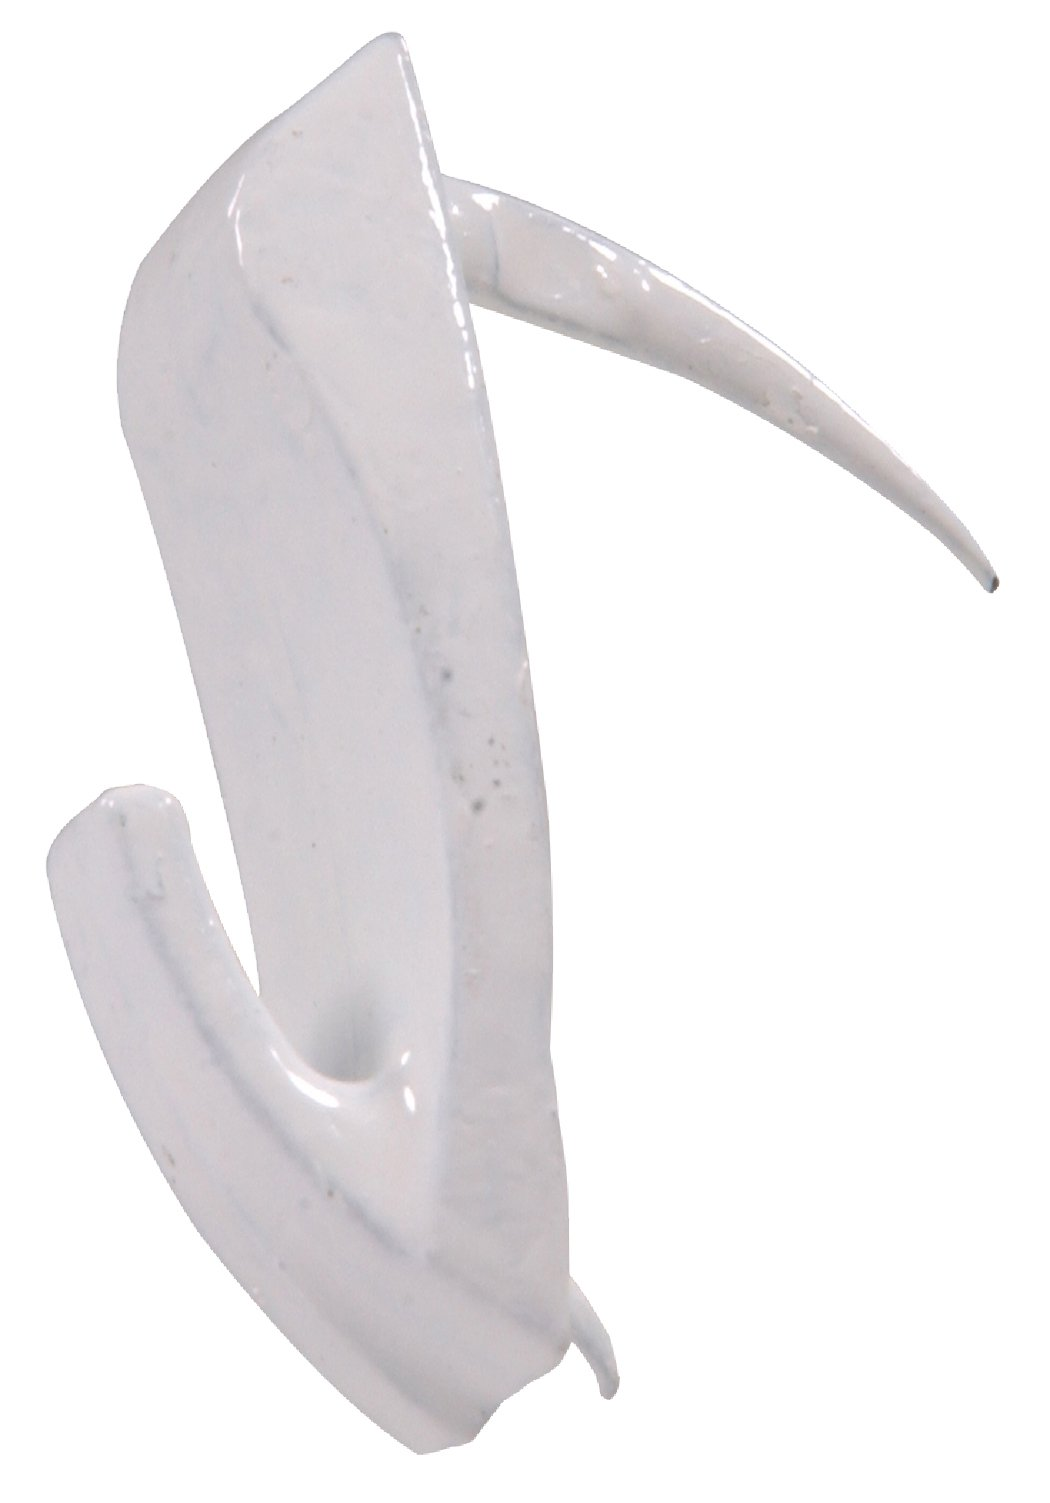 Hillman 122398 Large Wall Biter Picture Hangers White Finish 60lbs Package of 3